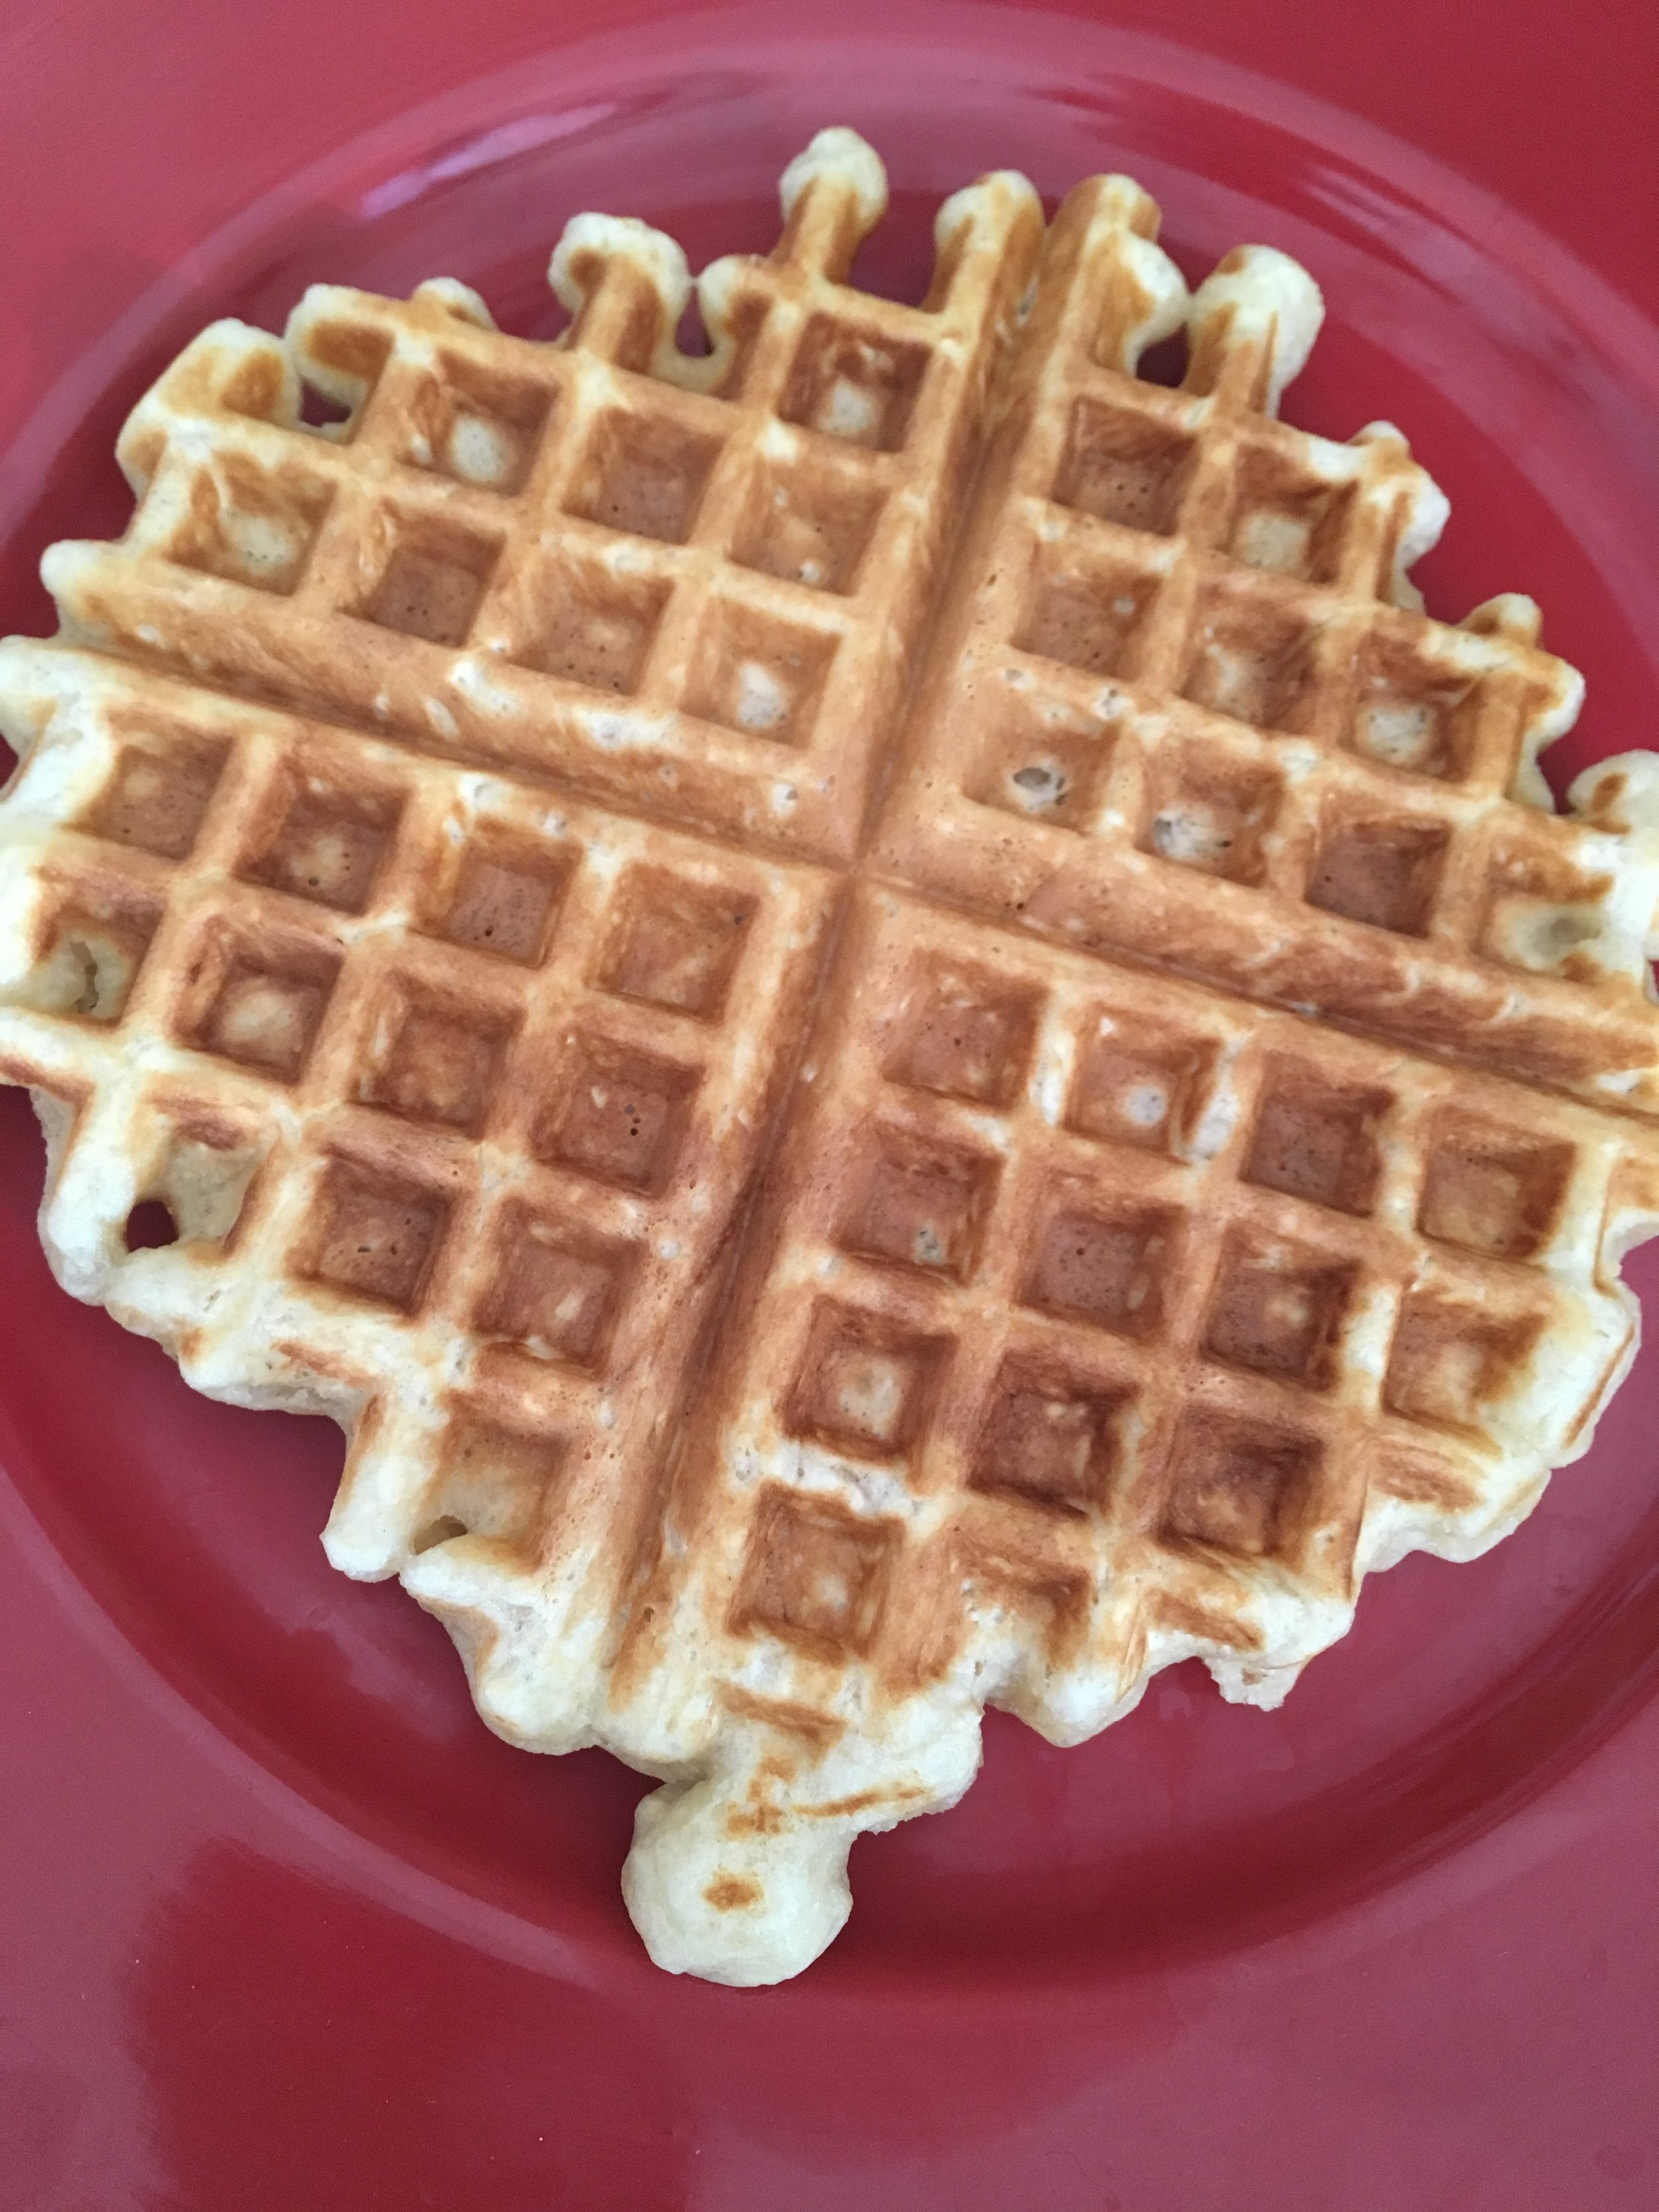 The first waffle done! (I always preheat the oven to a low temperature to keep them warm as I finish cooking the rest.